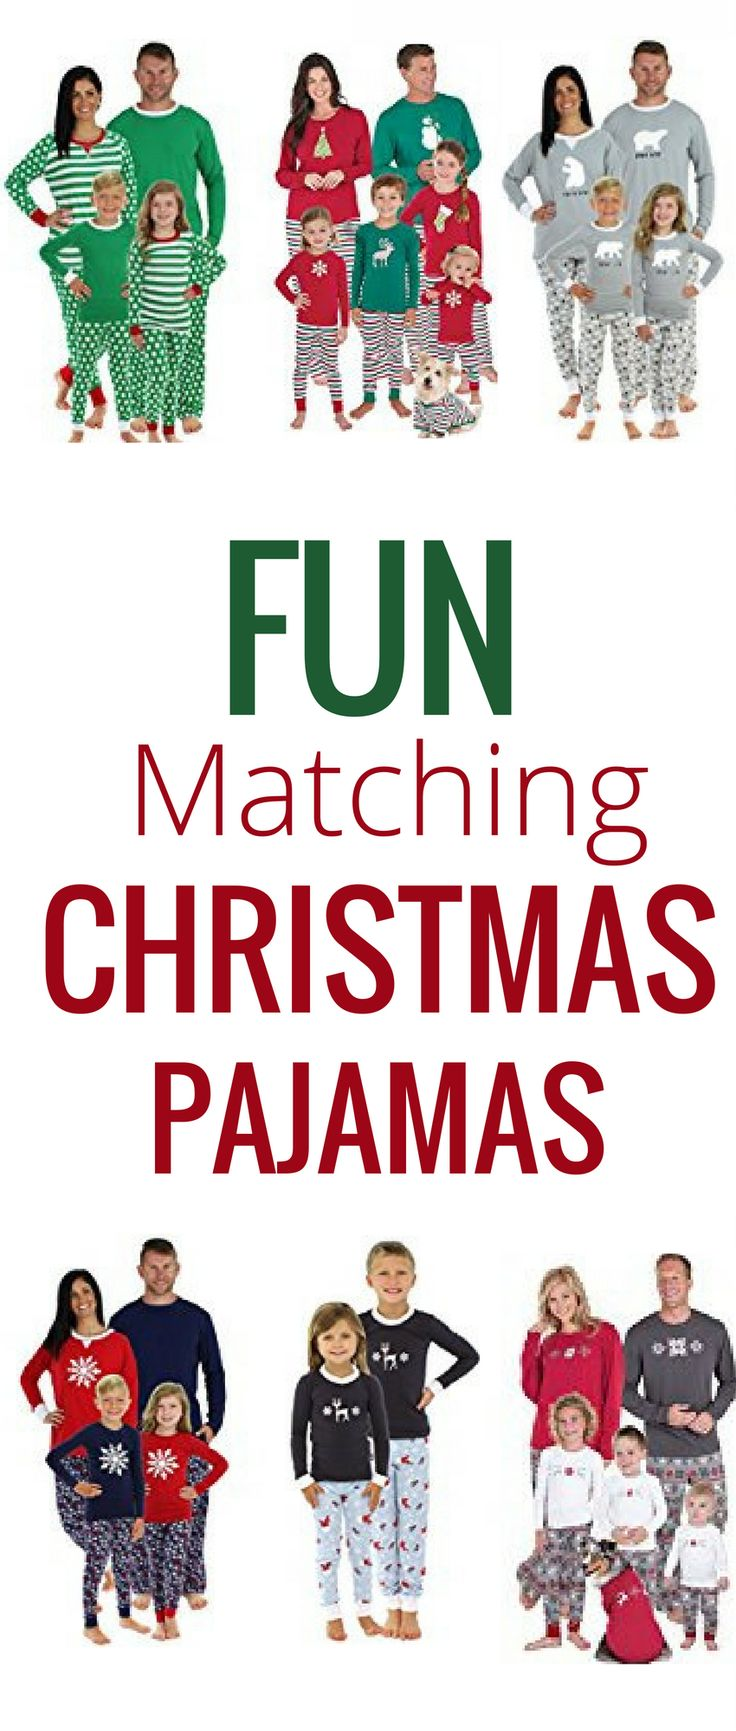 Matching Pajamas For Christmas For The Whole Family! Christmas Pajamas. Family Christmas Pajamas. Matching Family Pajamas. Matching Christmas Pajamas. Matching Family Christmas Pajamas. Matching Pajamas. Family Pajama Sets. Christmas Jammies. Holiday Pajamas. Family Holiday Pajamas. Xmas Pjs. Christmas Matching Pajamas. Matching Christmas Pajama Sets. Matching Christmas Pajamas. #christmaspajamas #christmasjammies #matchingpajamas